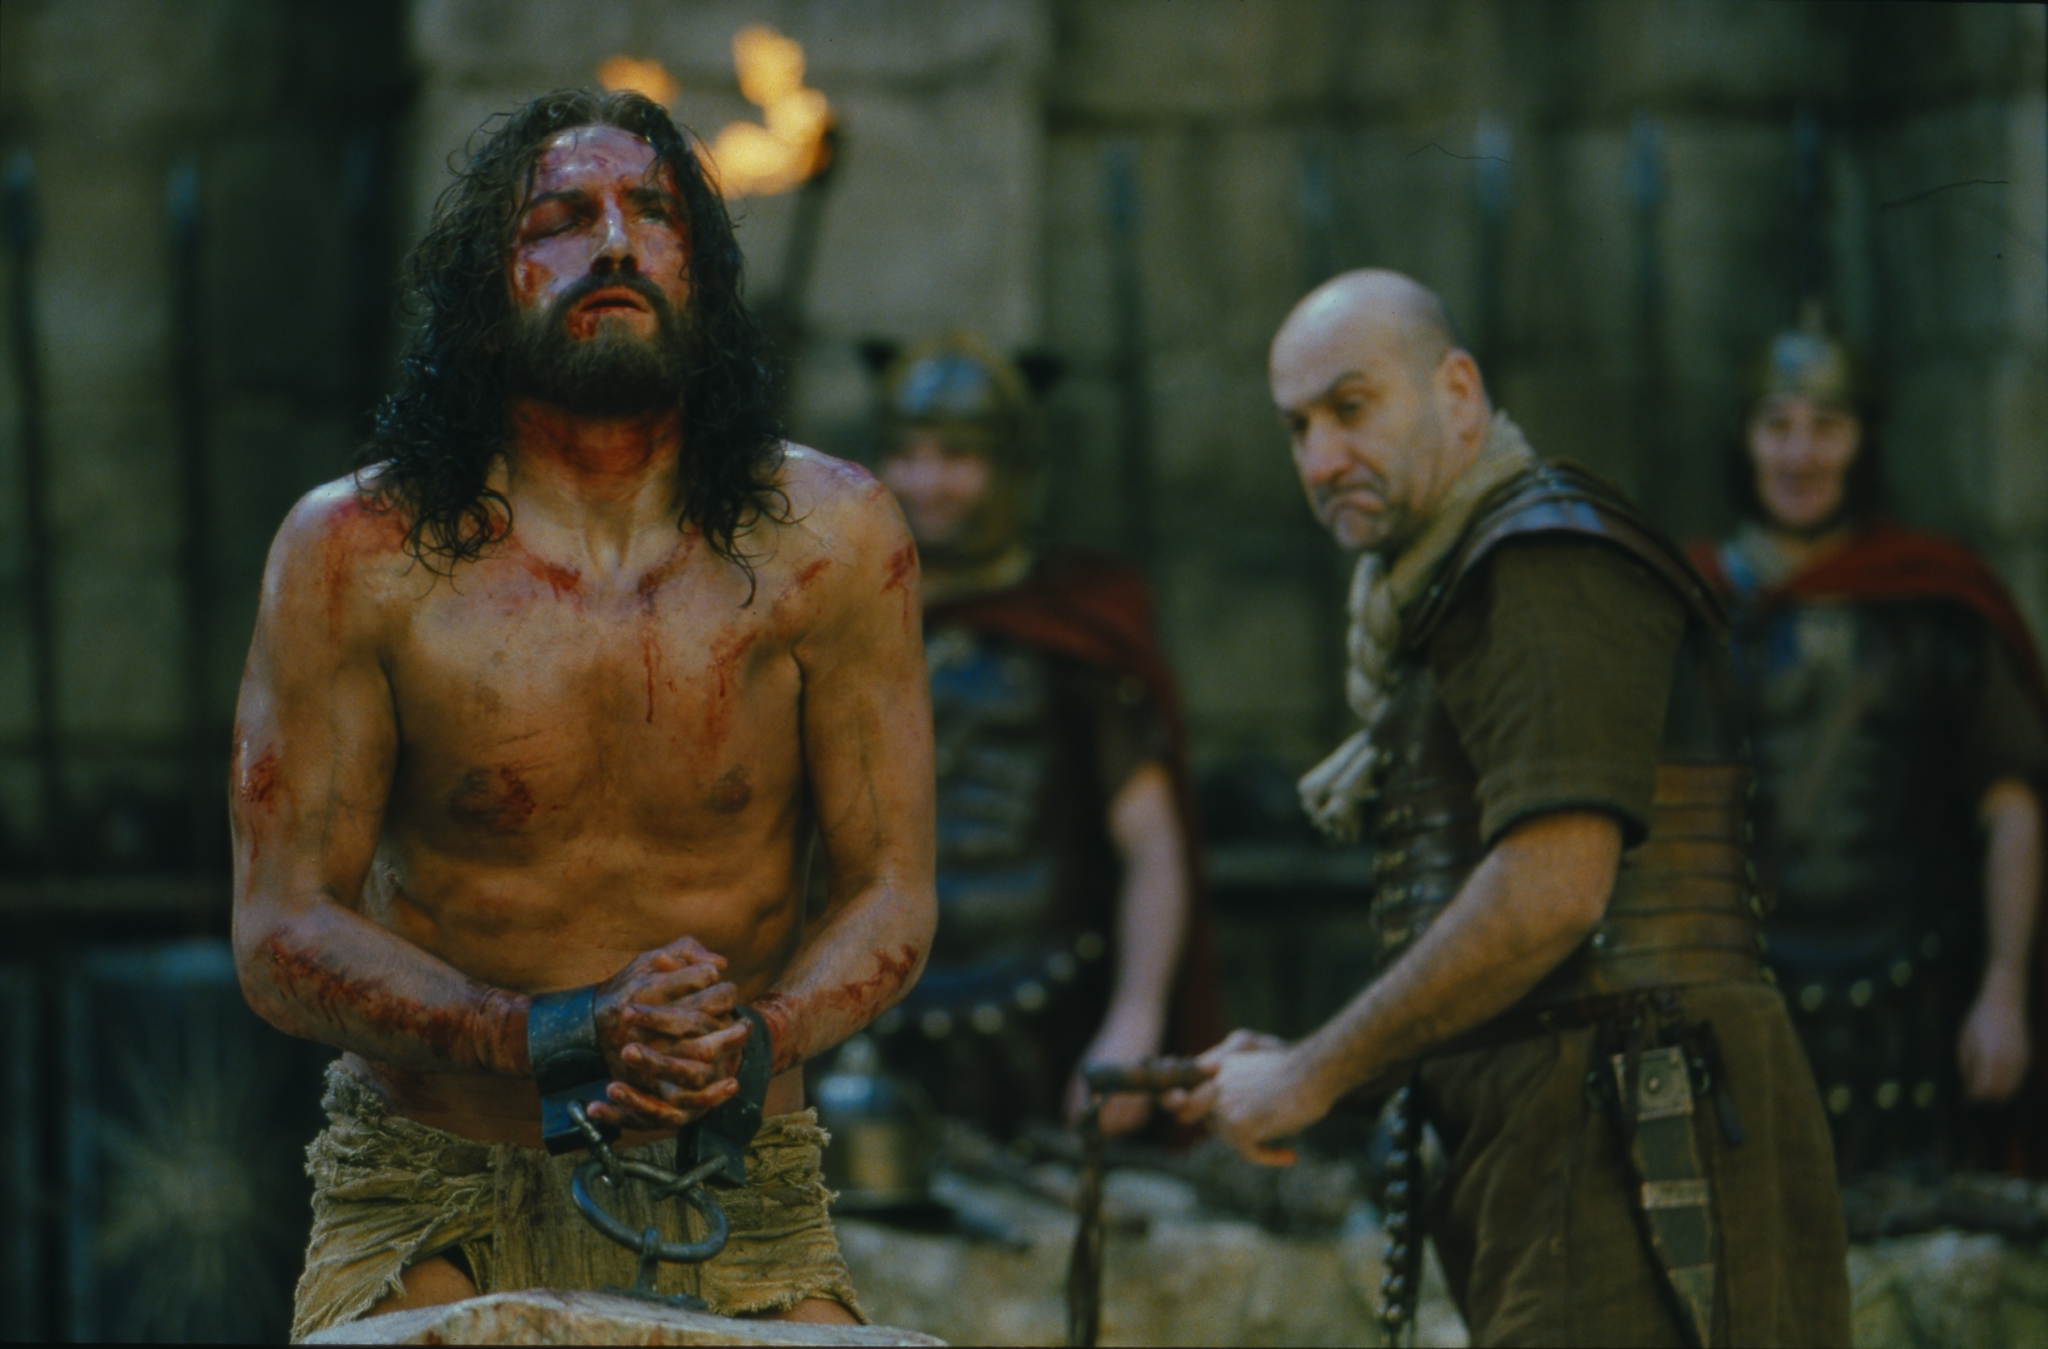 the passion of christ video free download